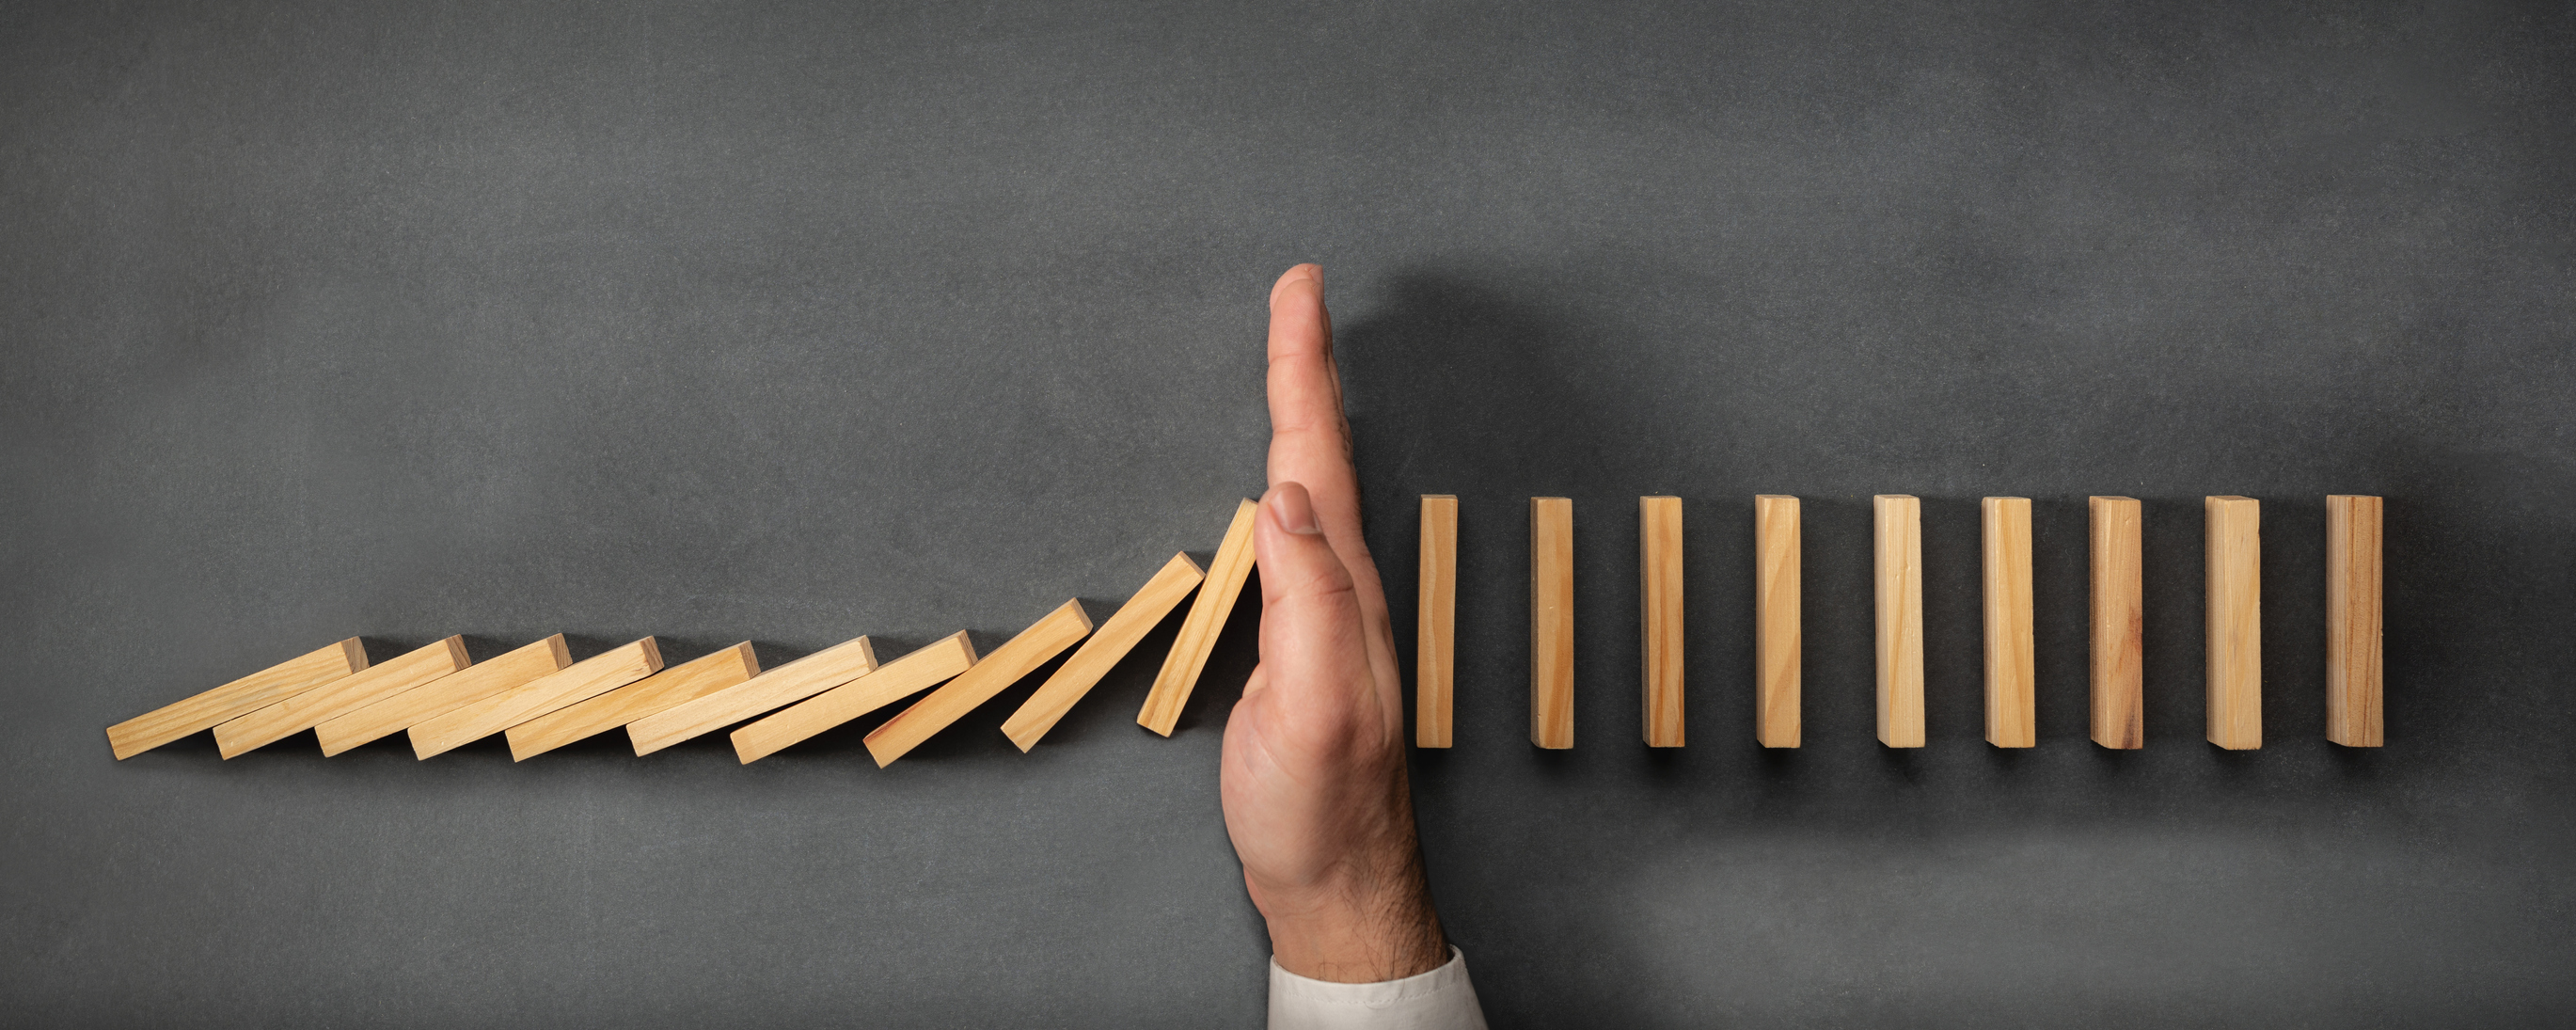 How to Apply Risk Management in Your Projects